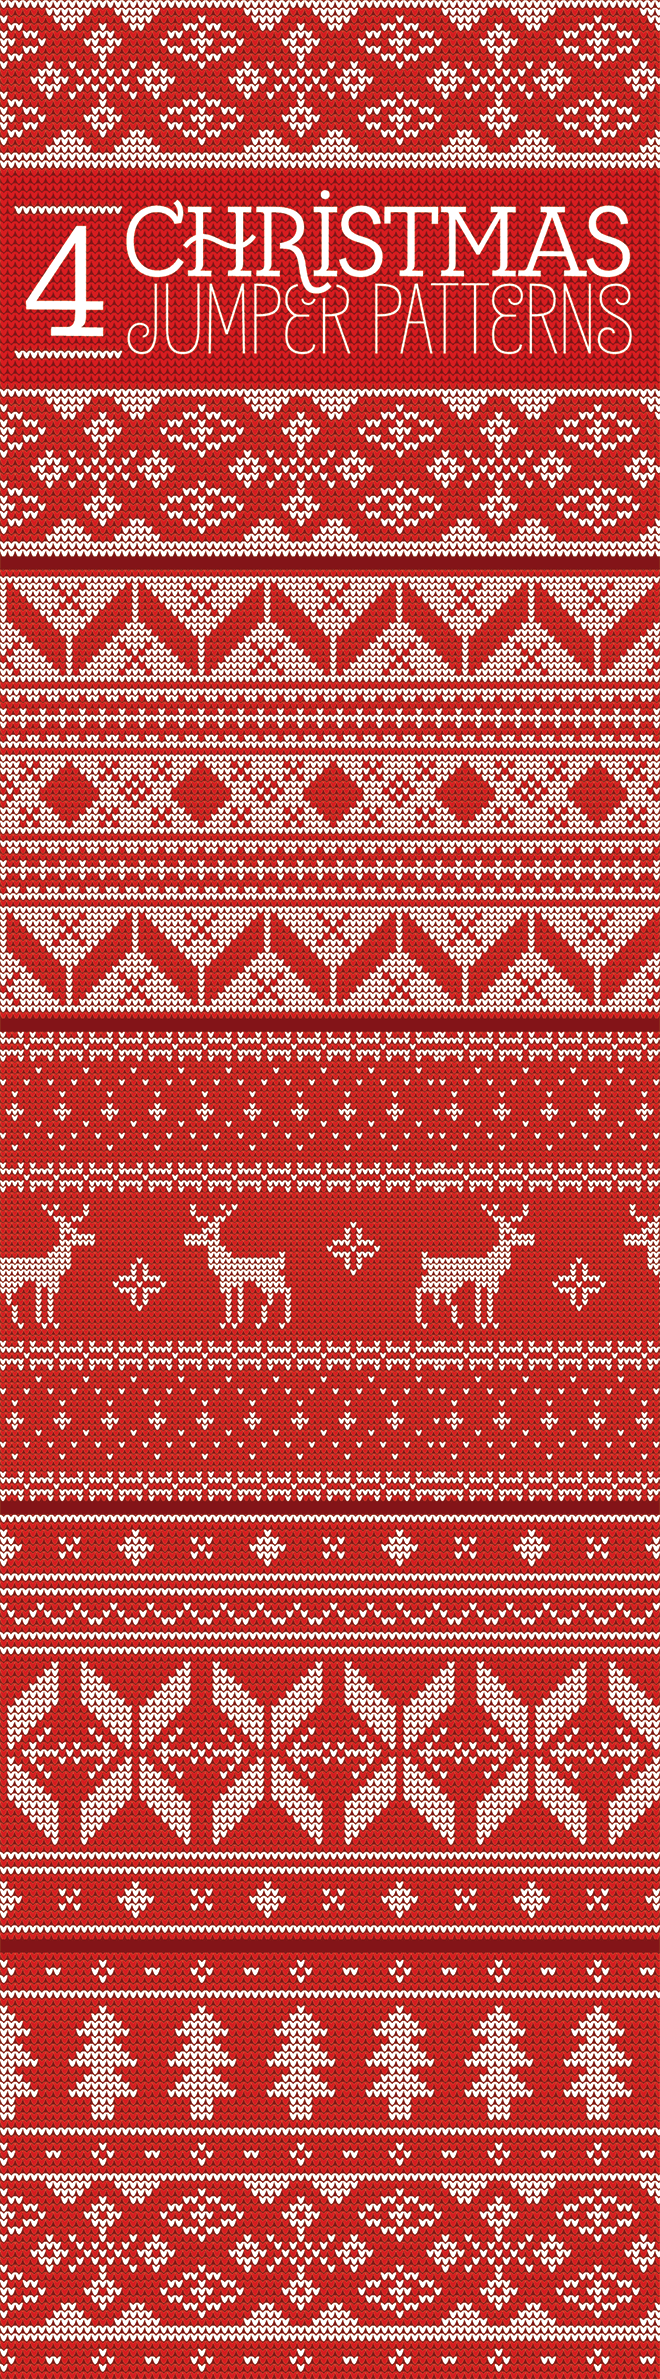 Knitting Pattern Christmas Jumper : 4 Free Seamless Knitted Christmas Jumper Patterns